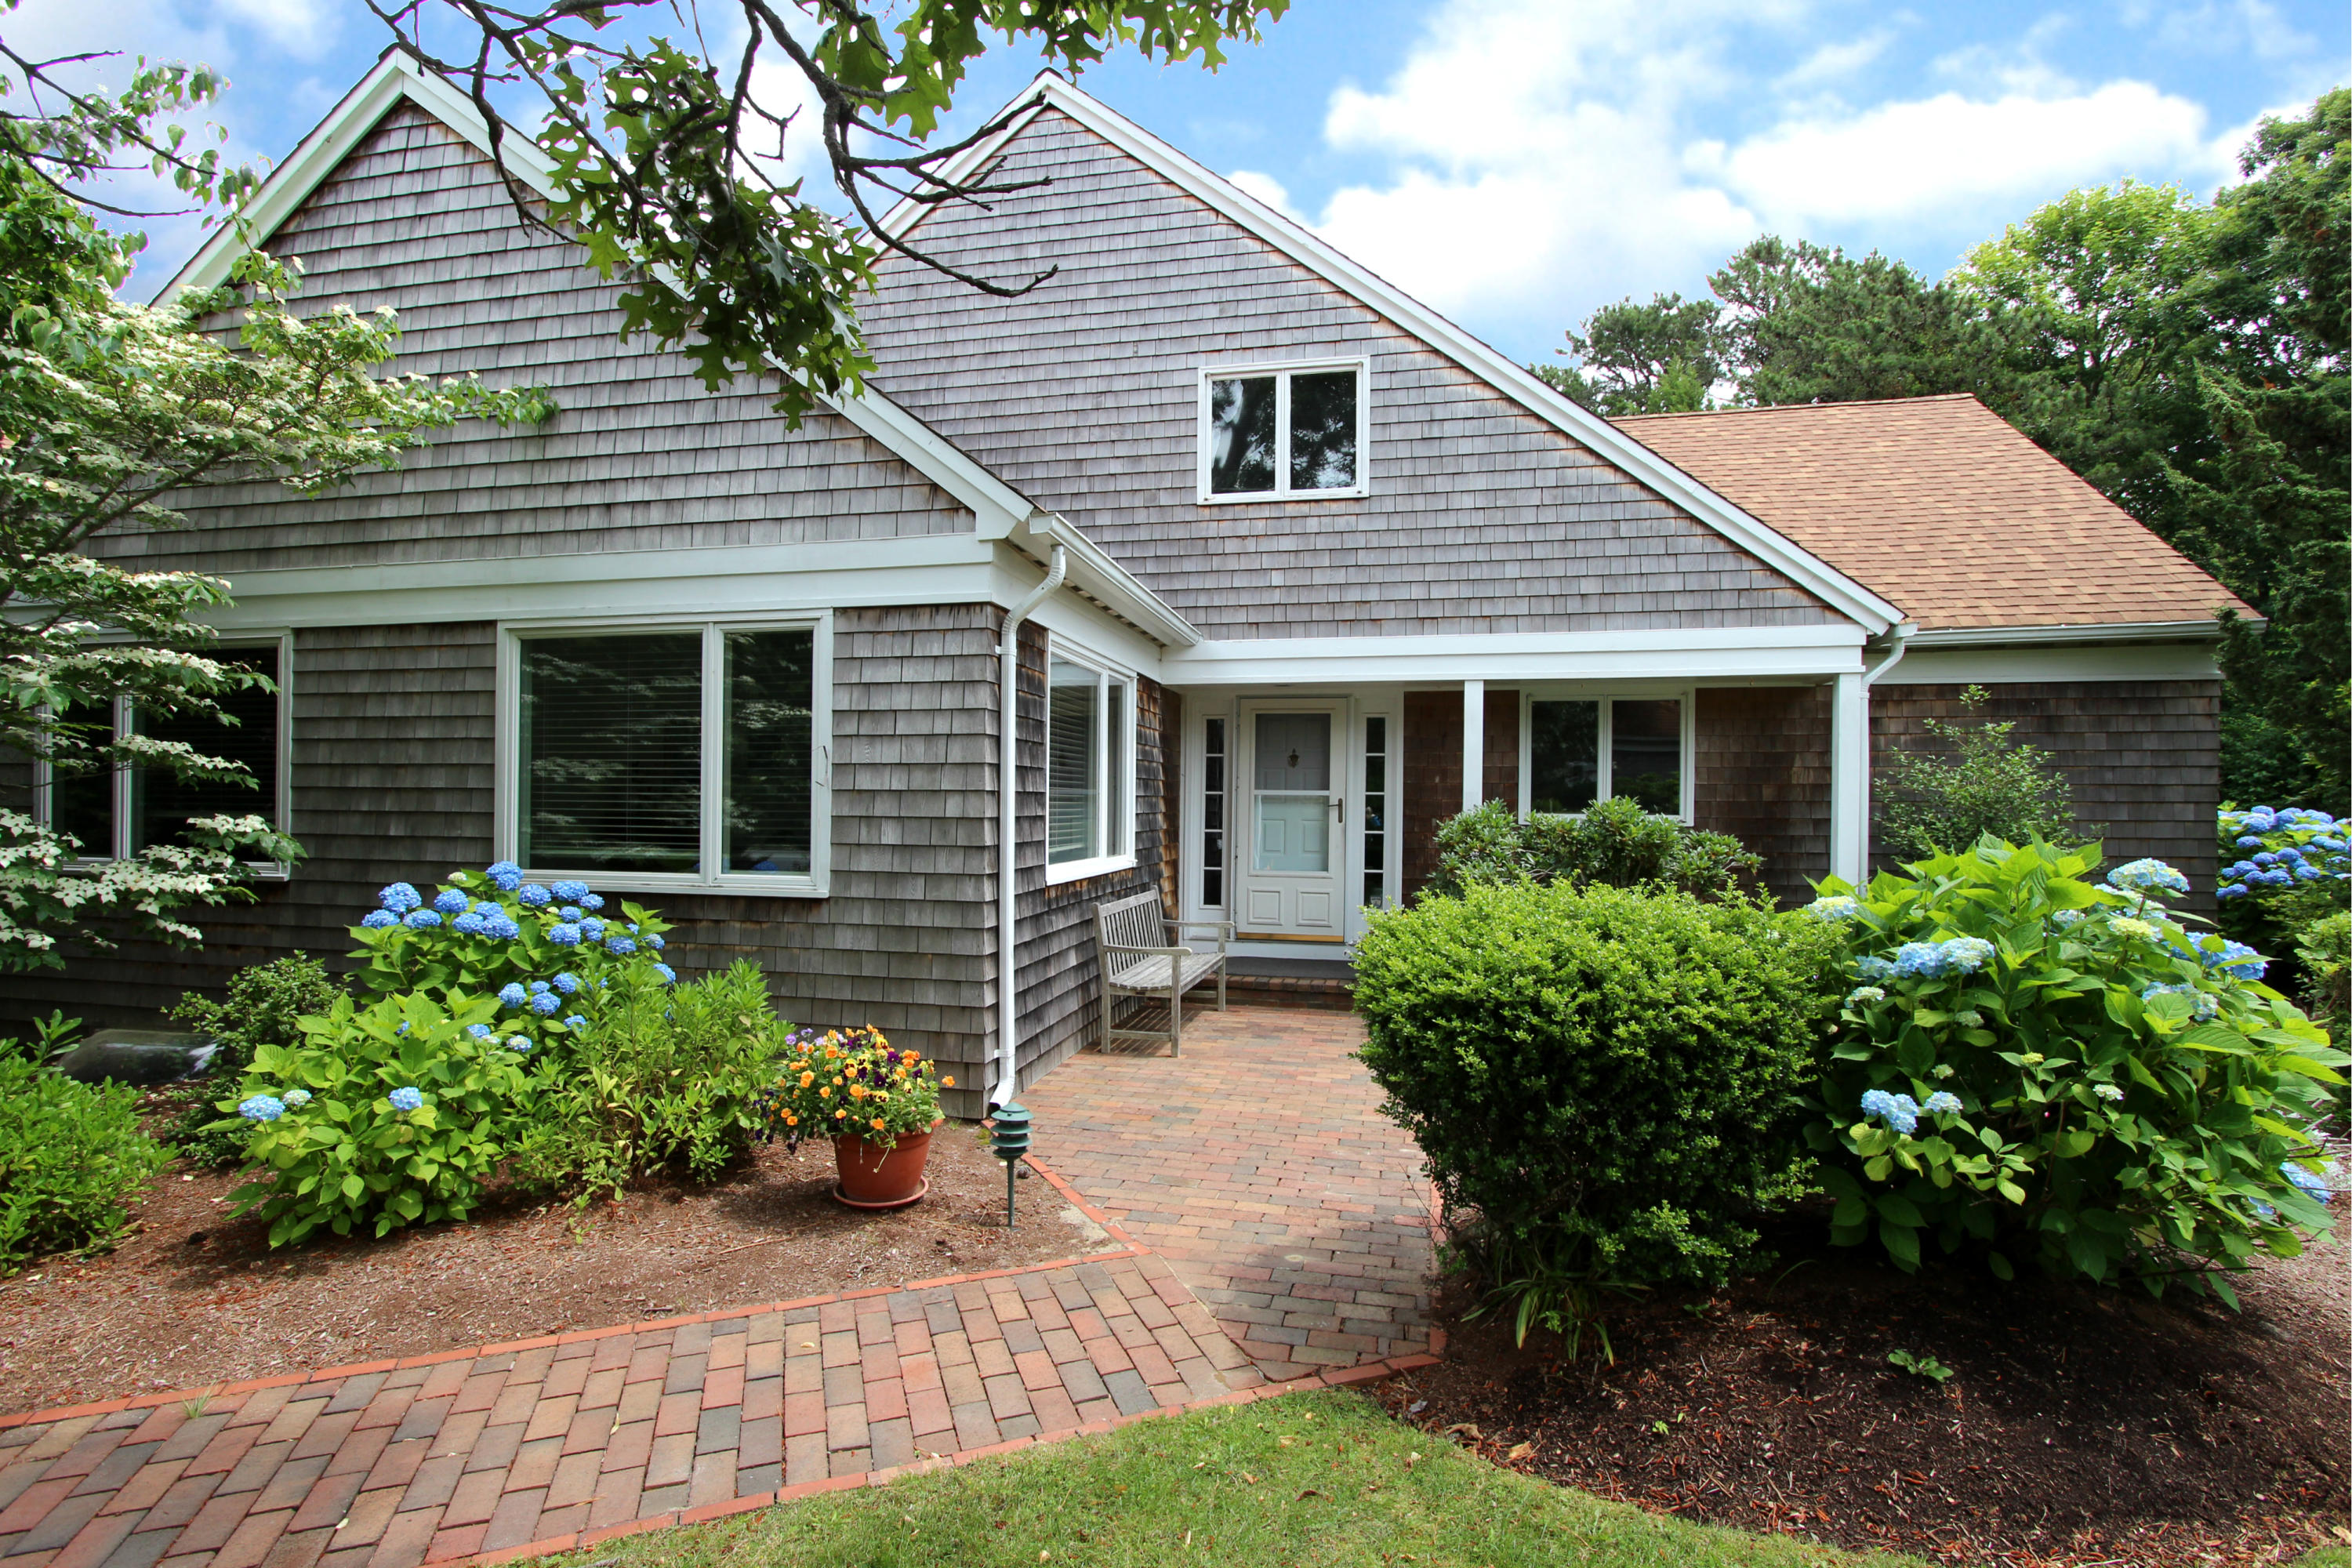 17 Scallop Way, Brewster MA, 02631